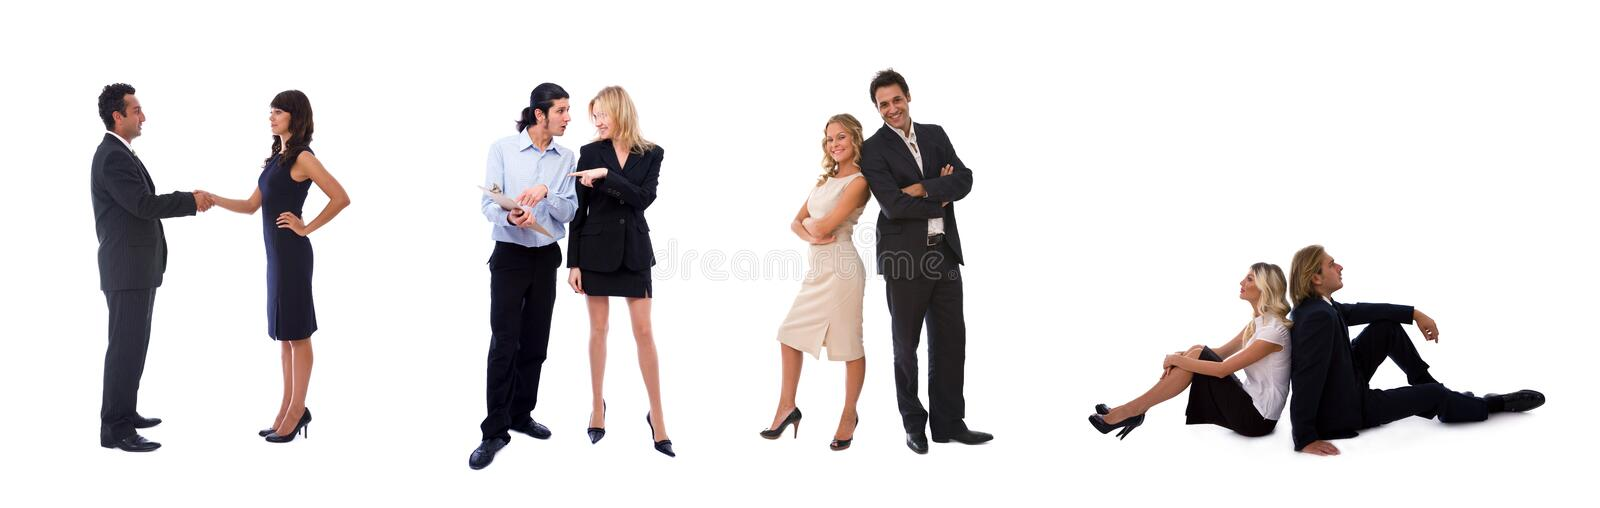 Different business teams royalty free stock photos